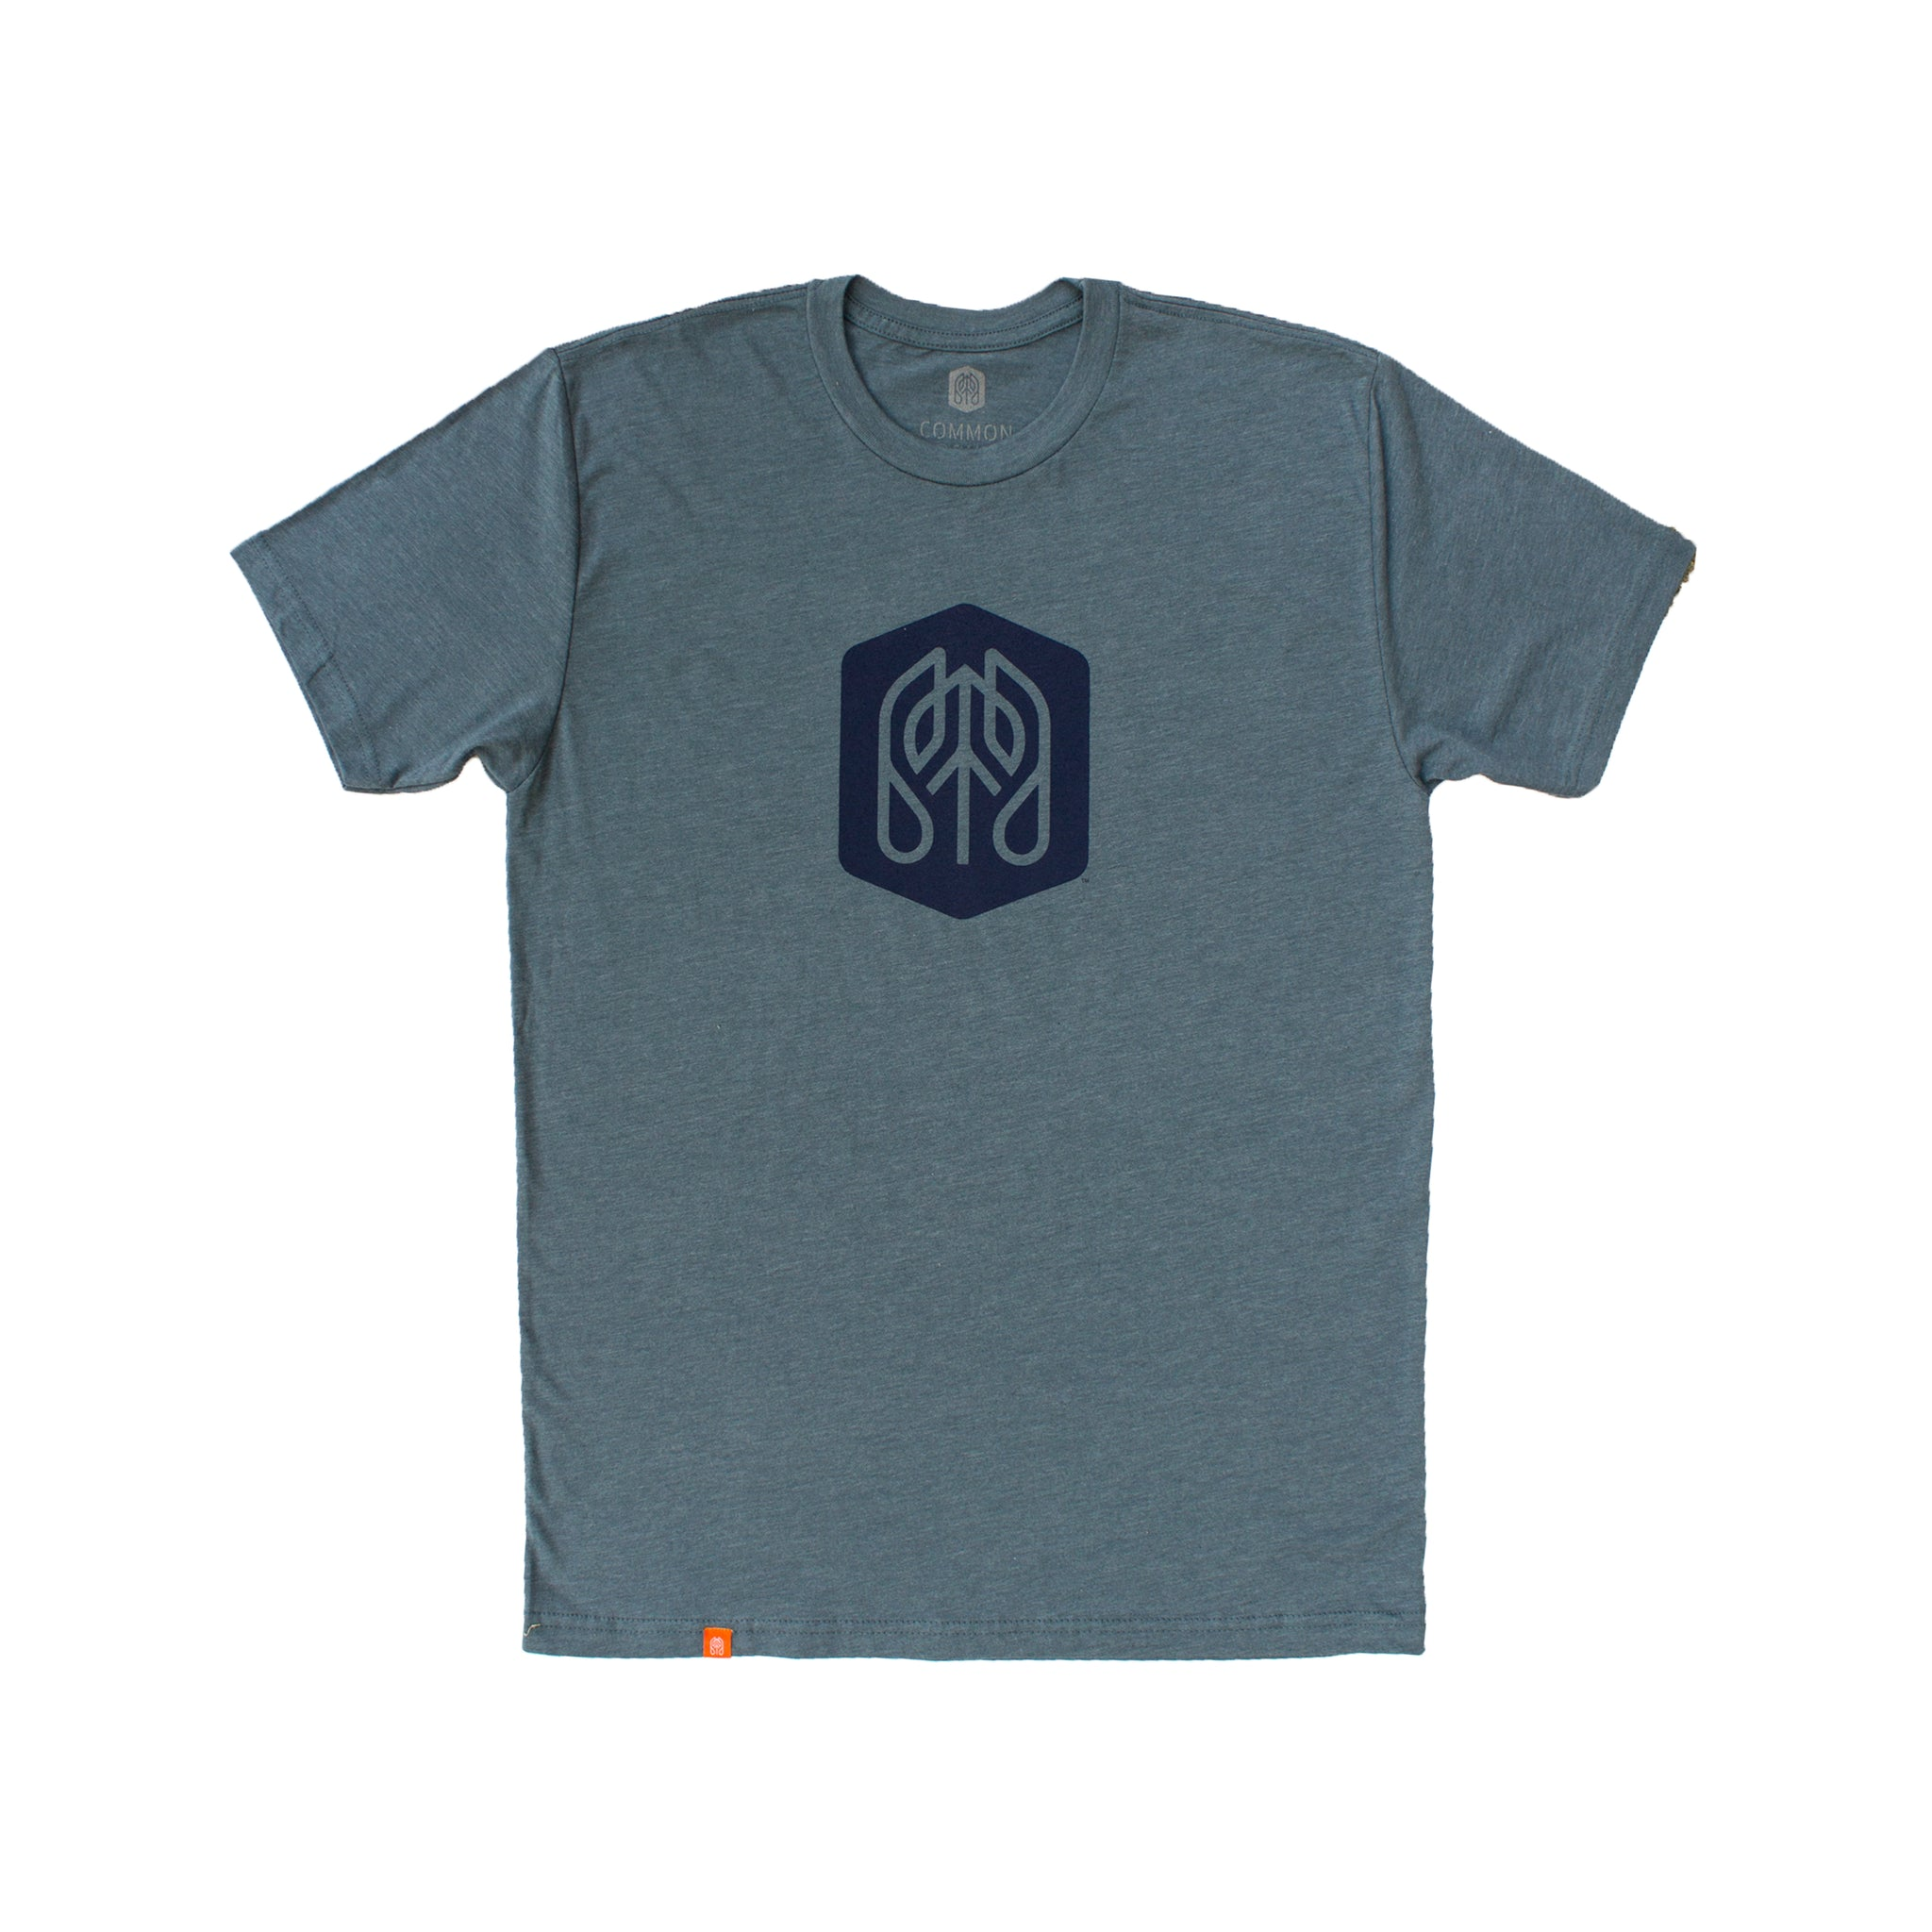 Indigo - Common Ground T shirt Front View